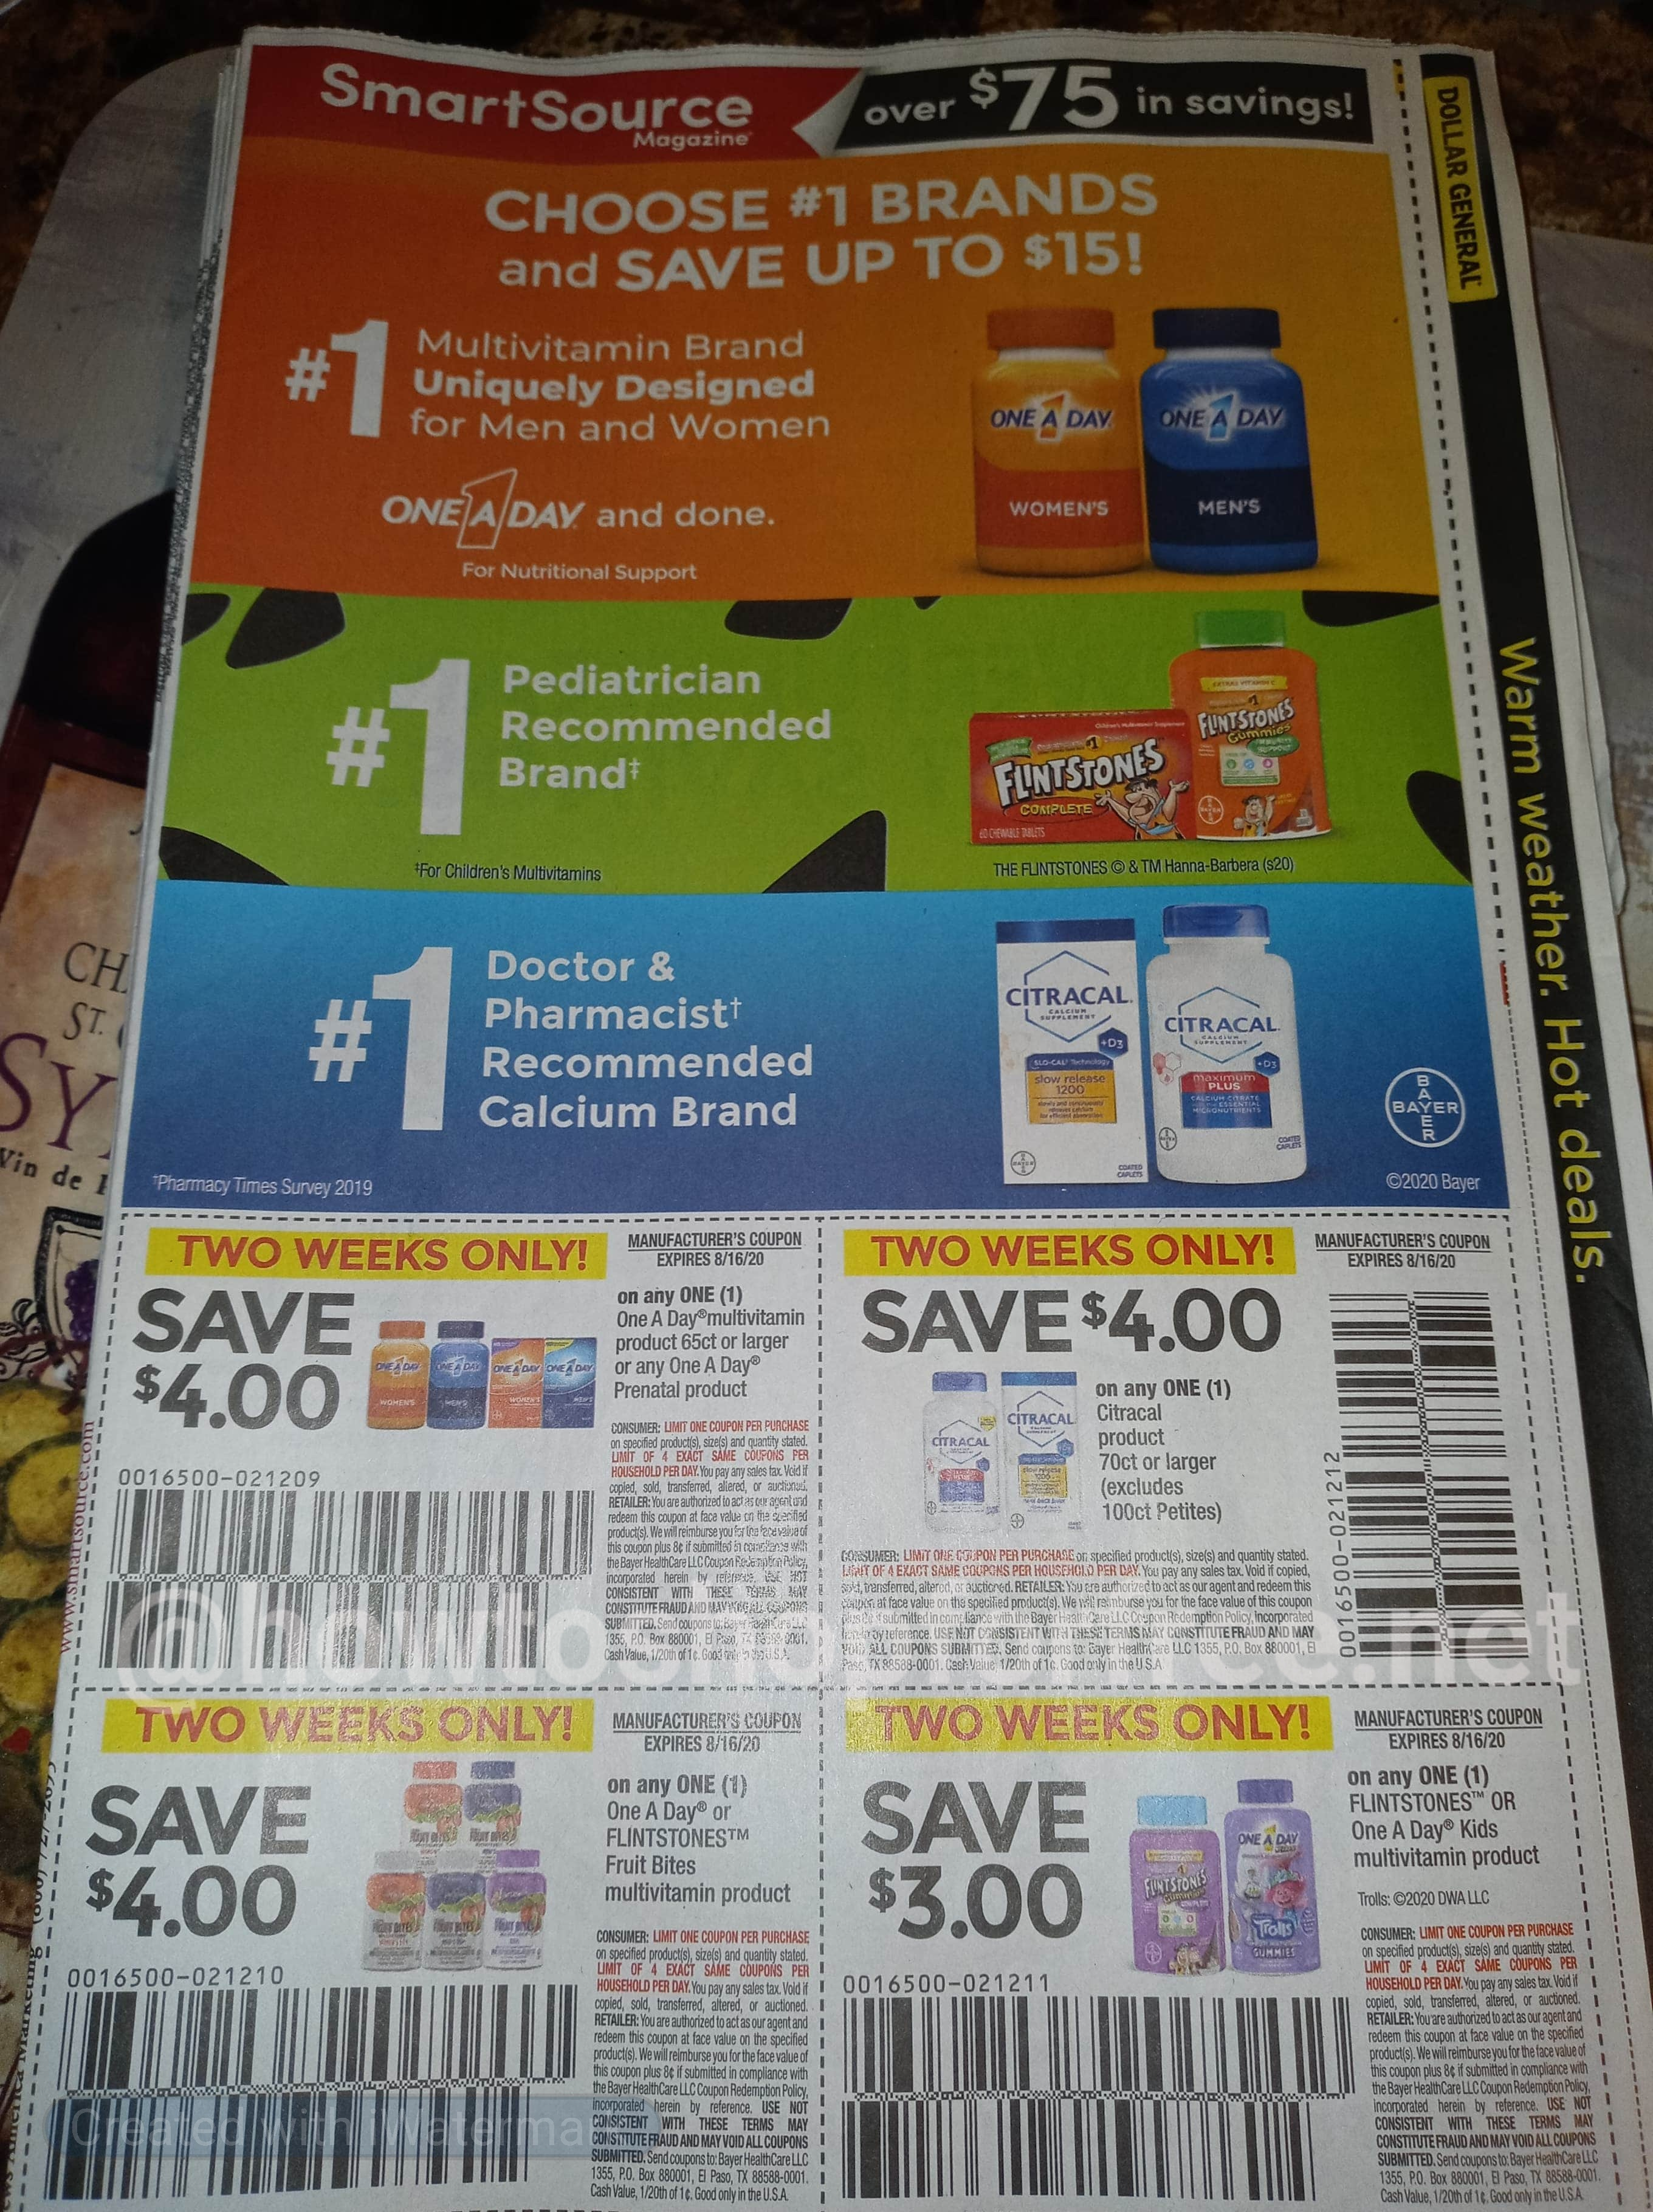 Smartsource Insert Preview 8 2 How To Shop For Free With Kathy Spencer